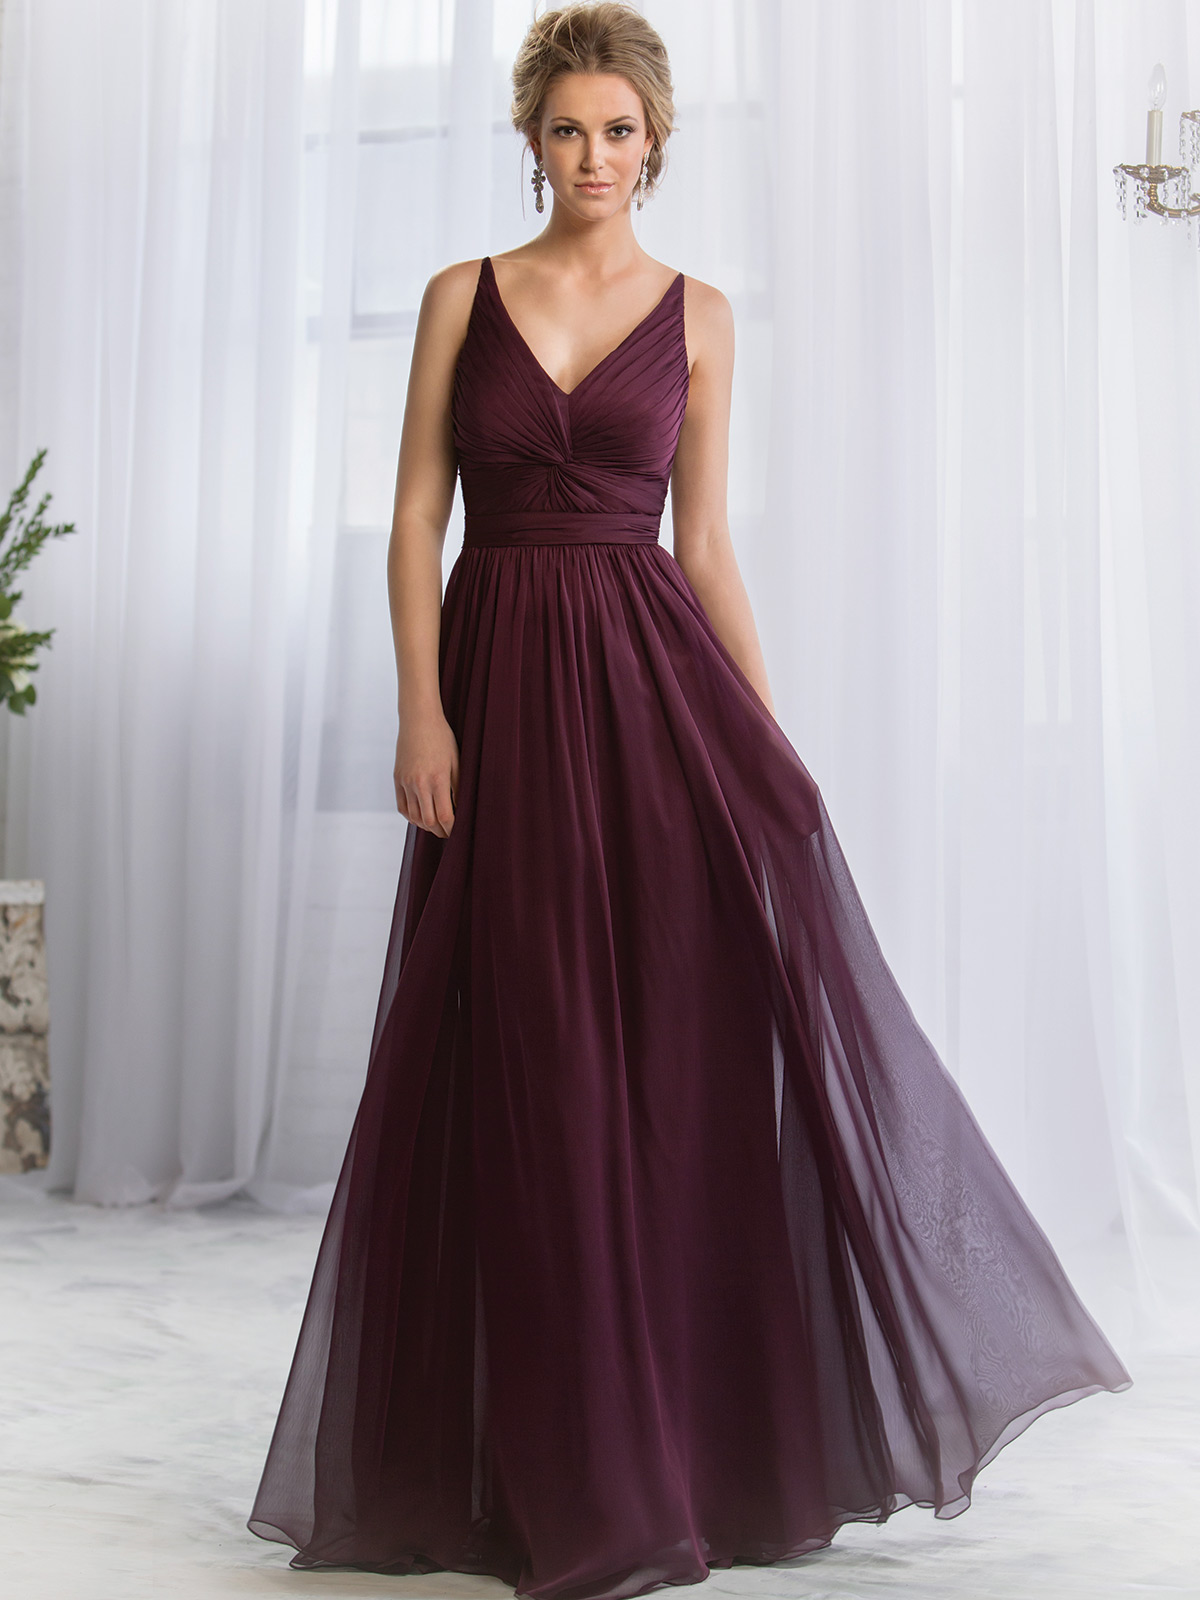 Belsoie bridesmaid dress l164052 dimitradesigns v neck pleated belsoie bridesmaids dress by jasmine l164052 ombrellifo Choice Image